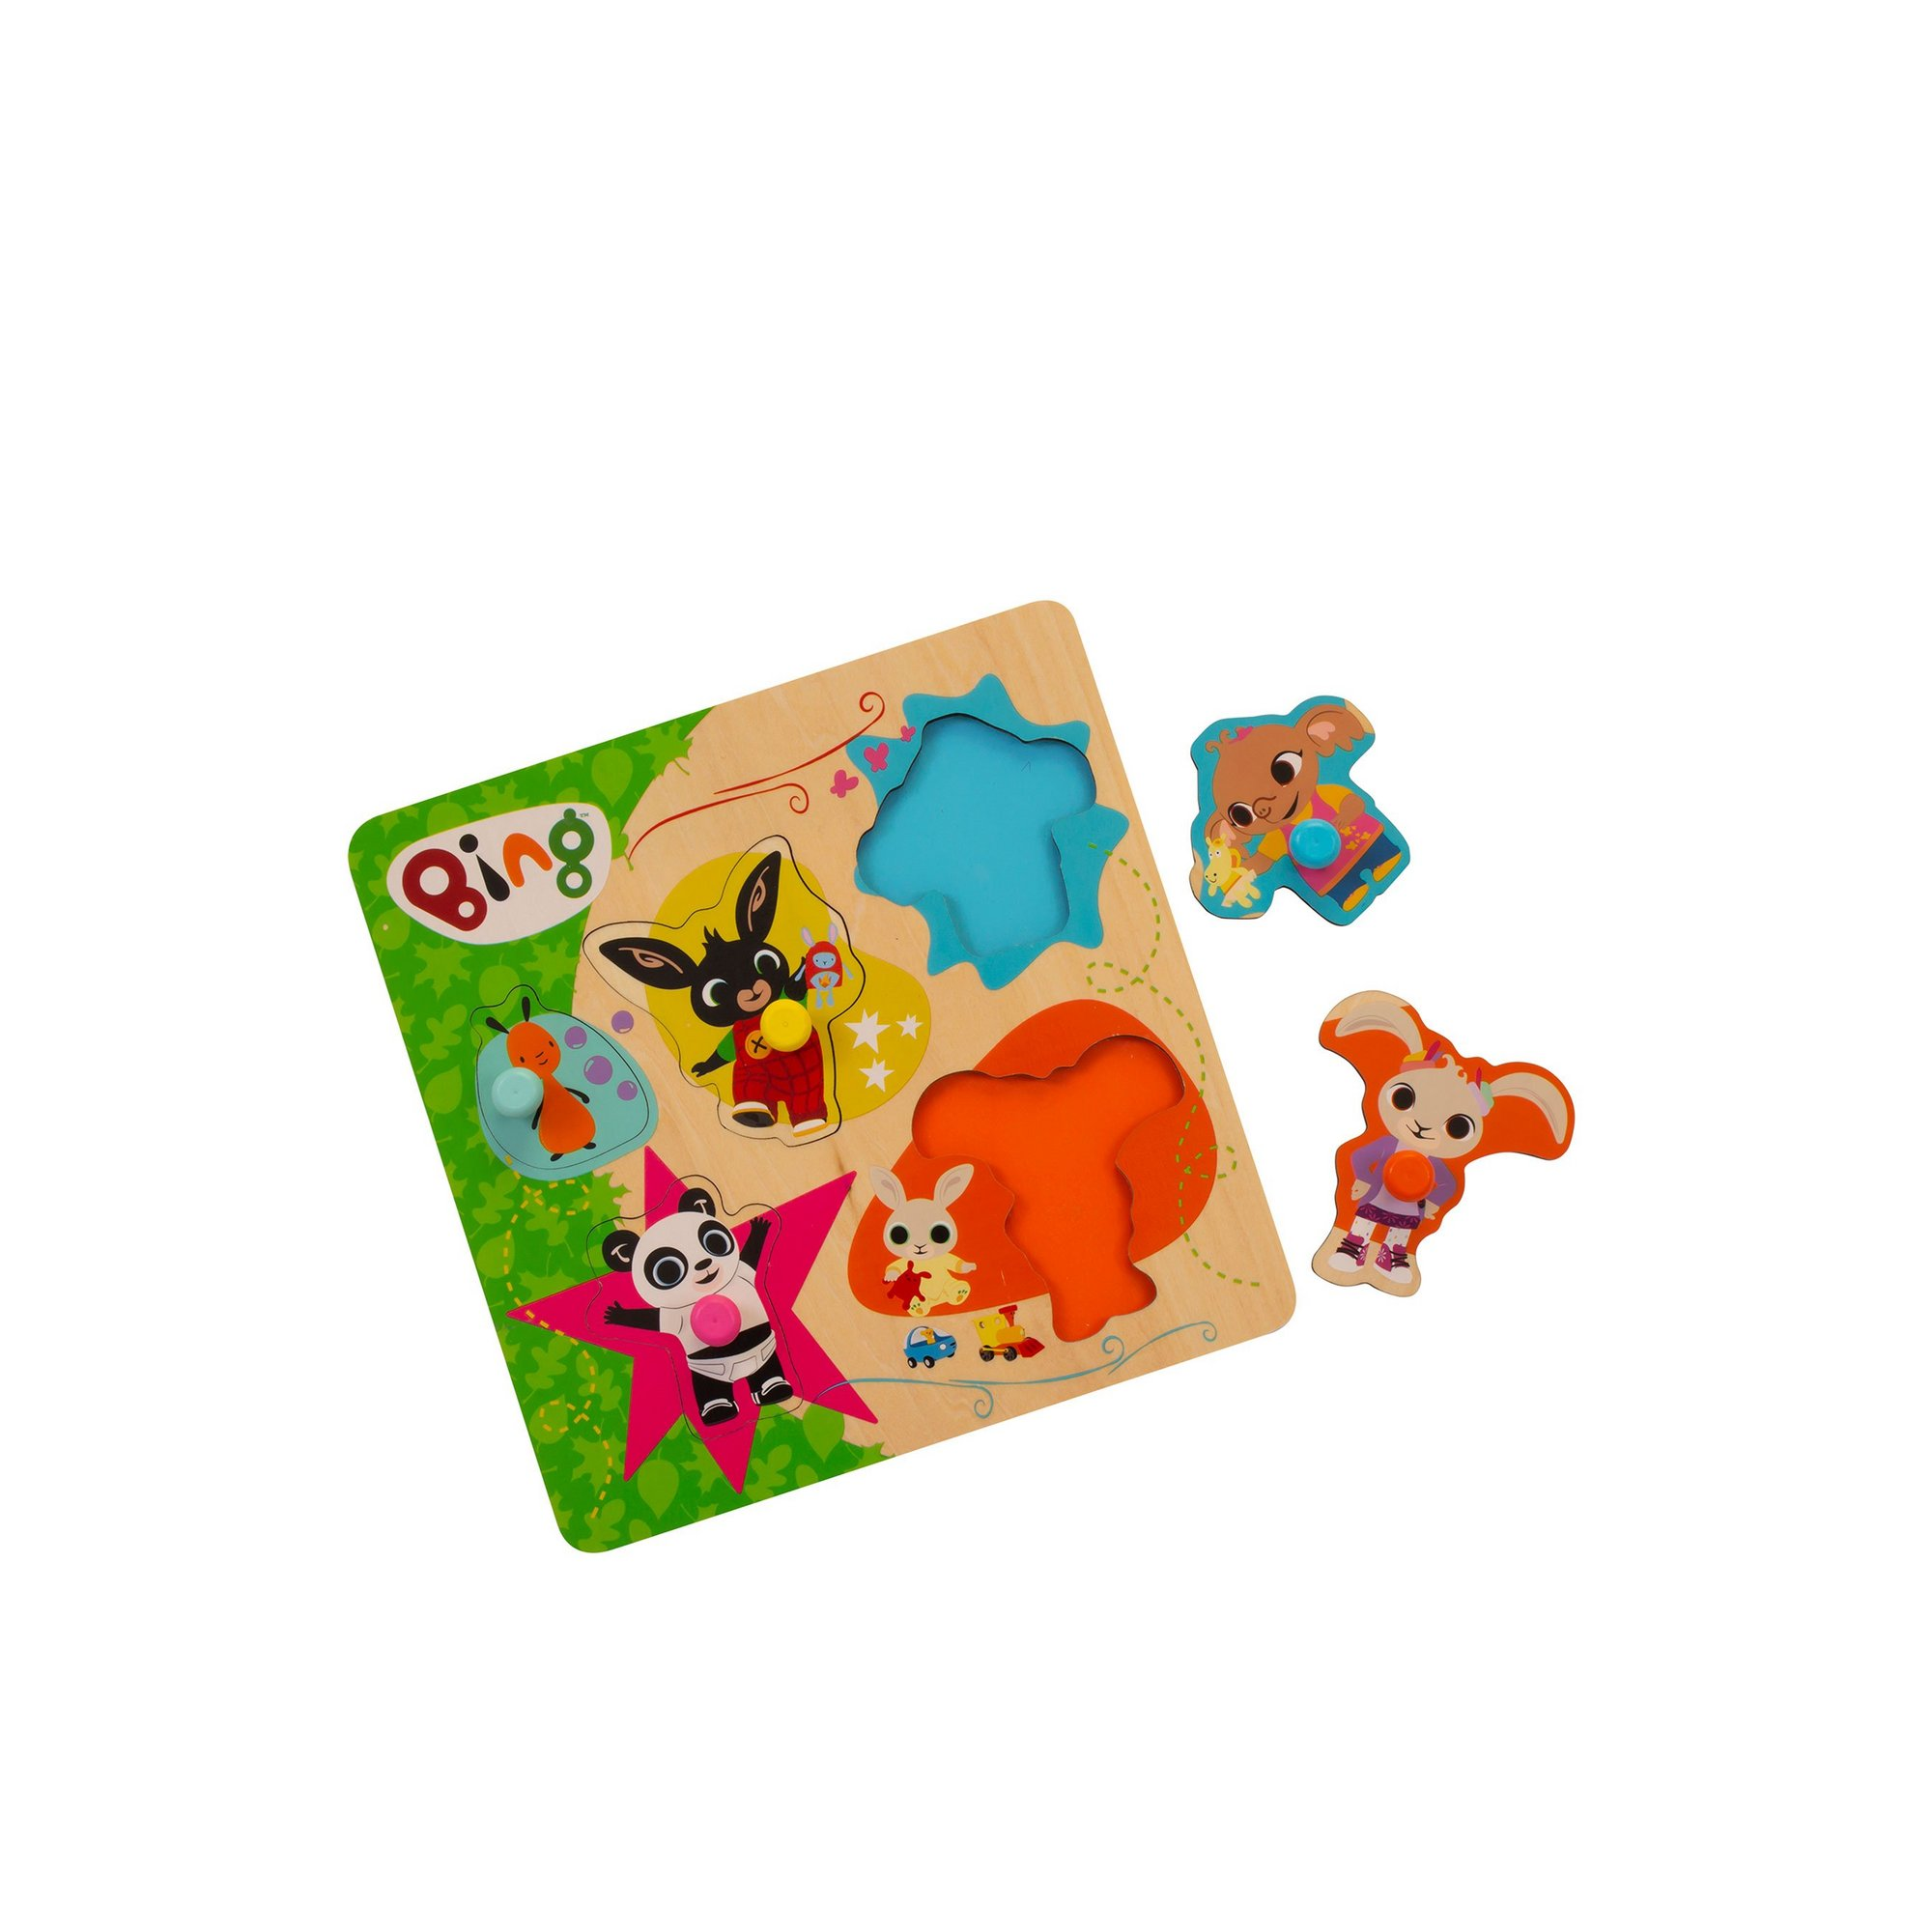 Image of Bing Wooden Puzzle